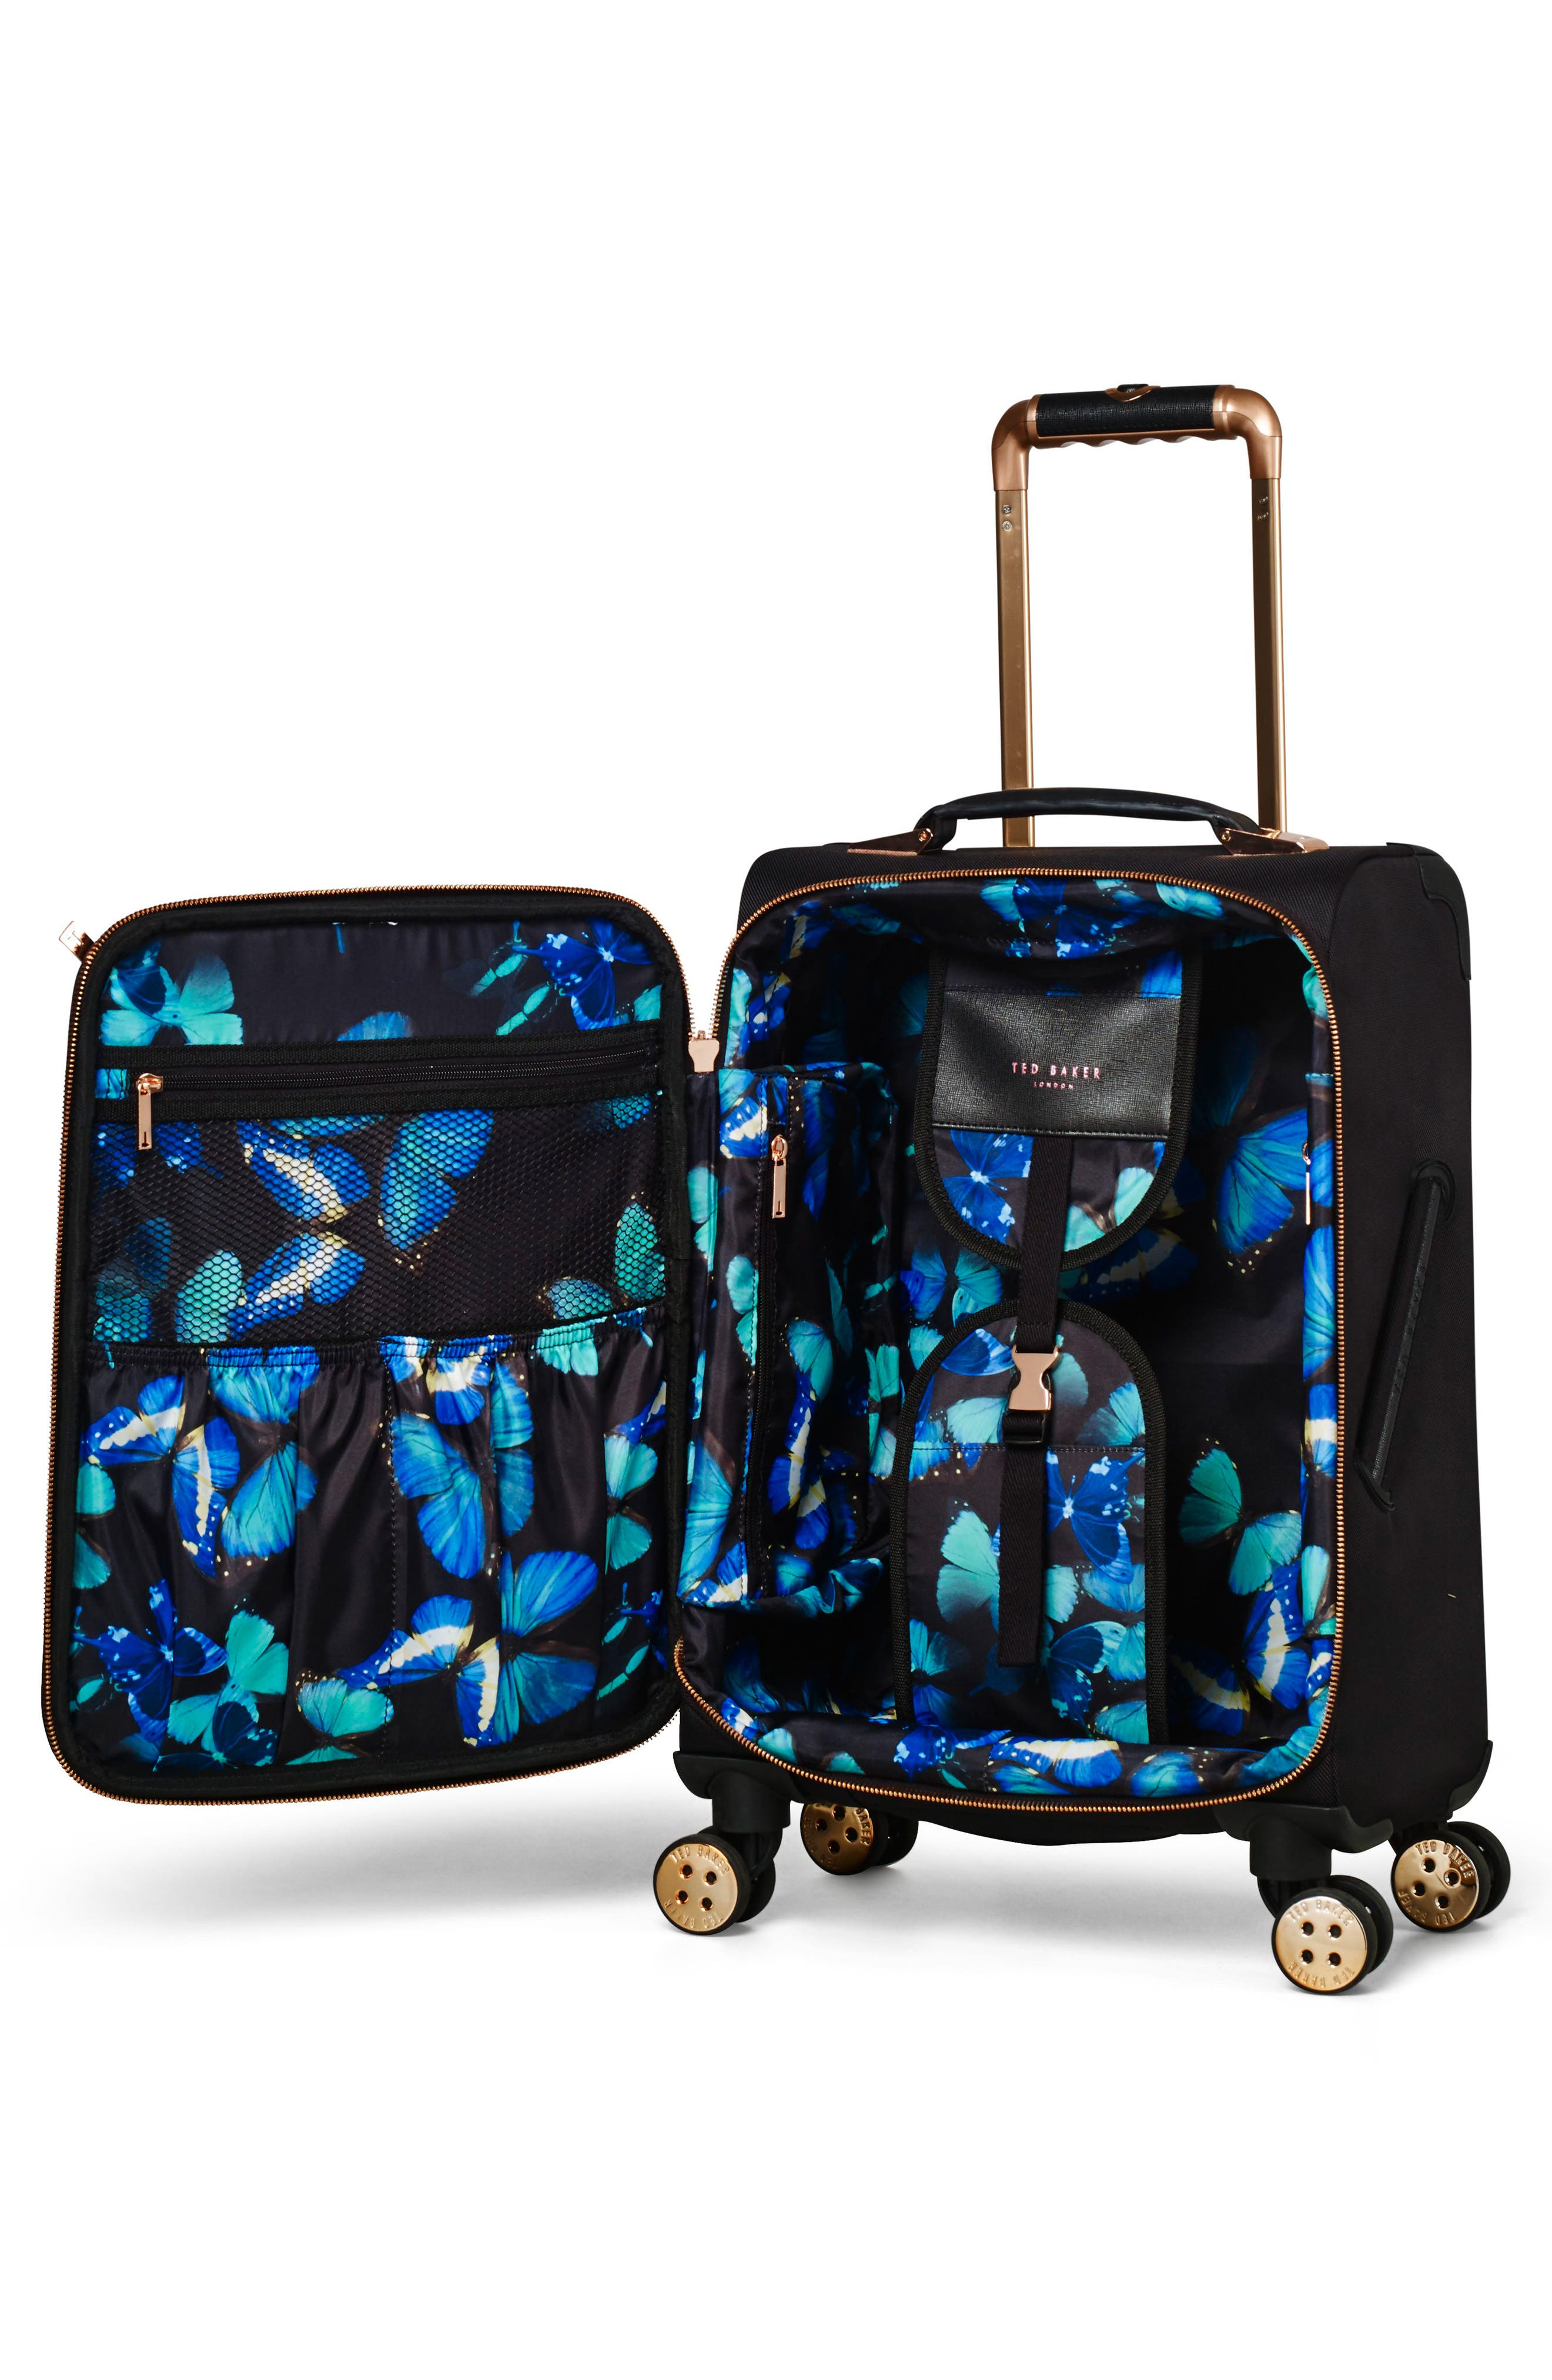 22-Inch Trolley Packing Case,                             Alternate thumbnail 4, color,                             BLACK